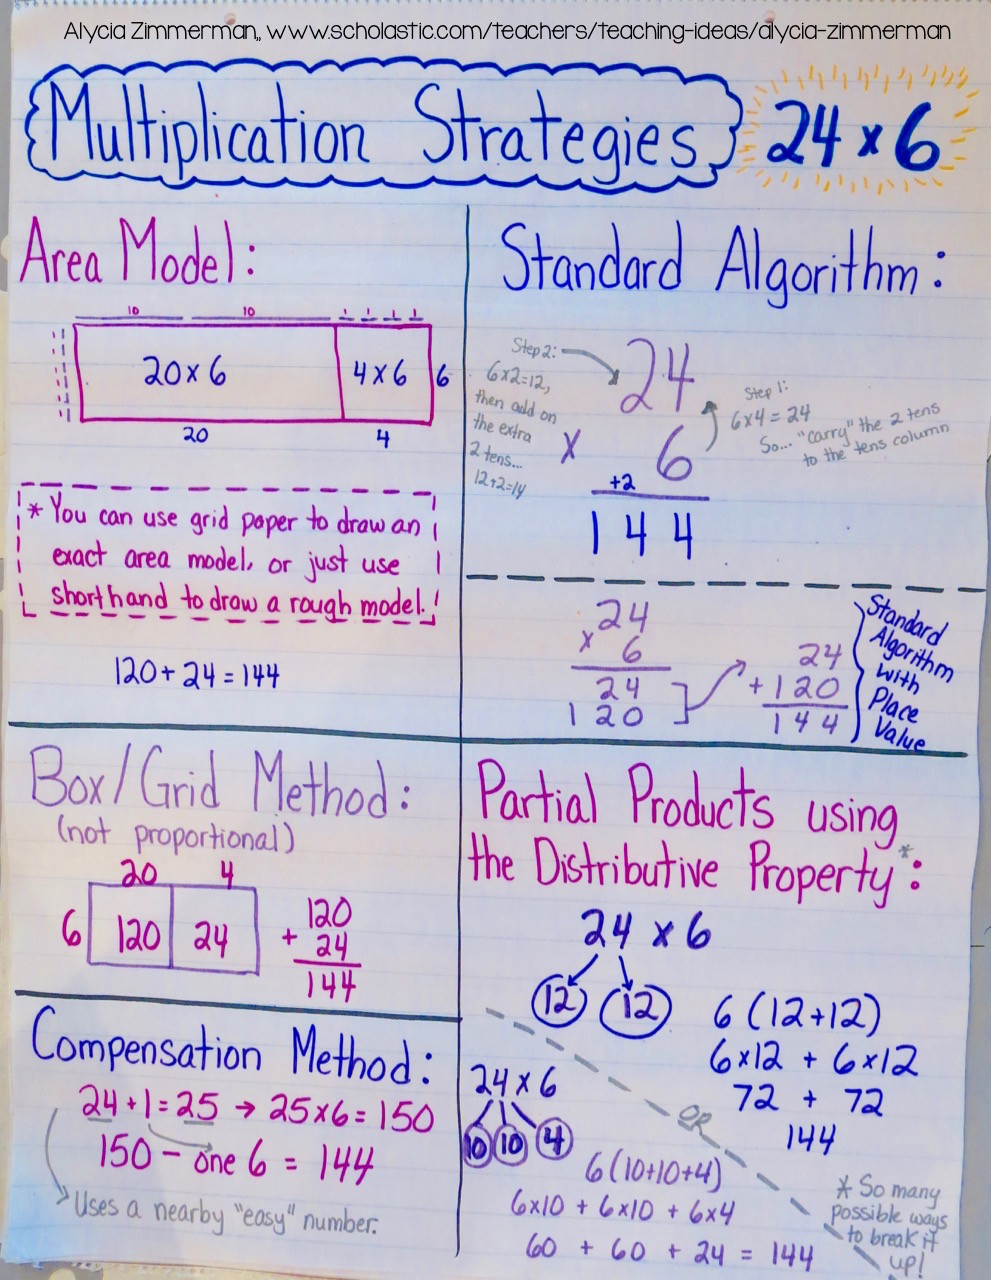 Distributive Property 4th Grade Worksheets Teaching Multiplication with the Distributive Property